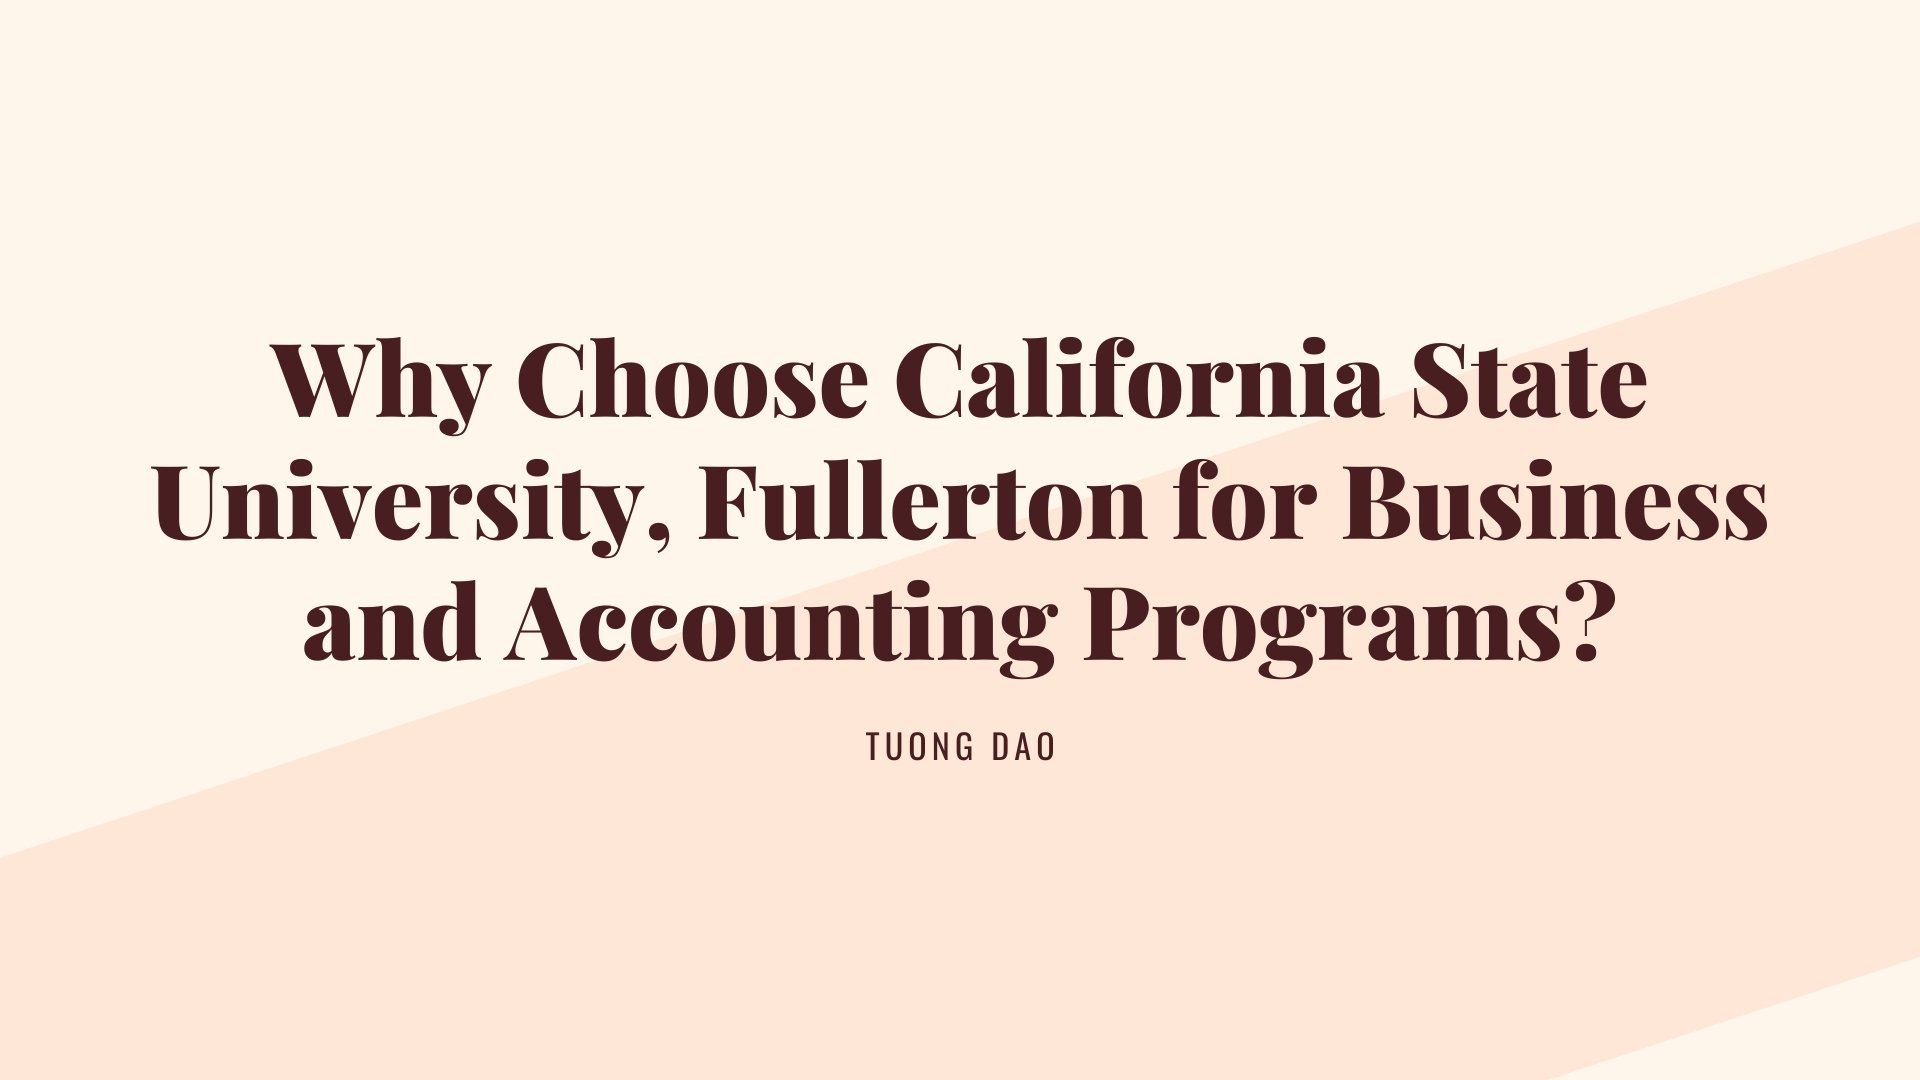 Why Choose California State University, Fullerton for Business and Accounting Programs